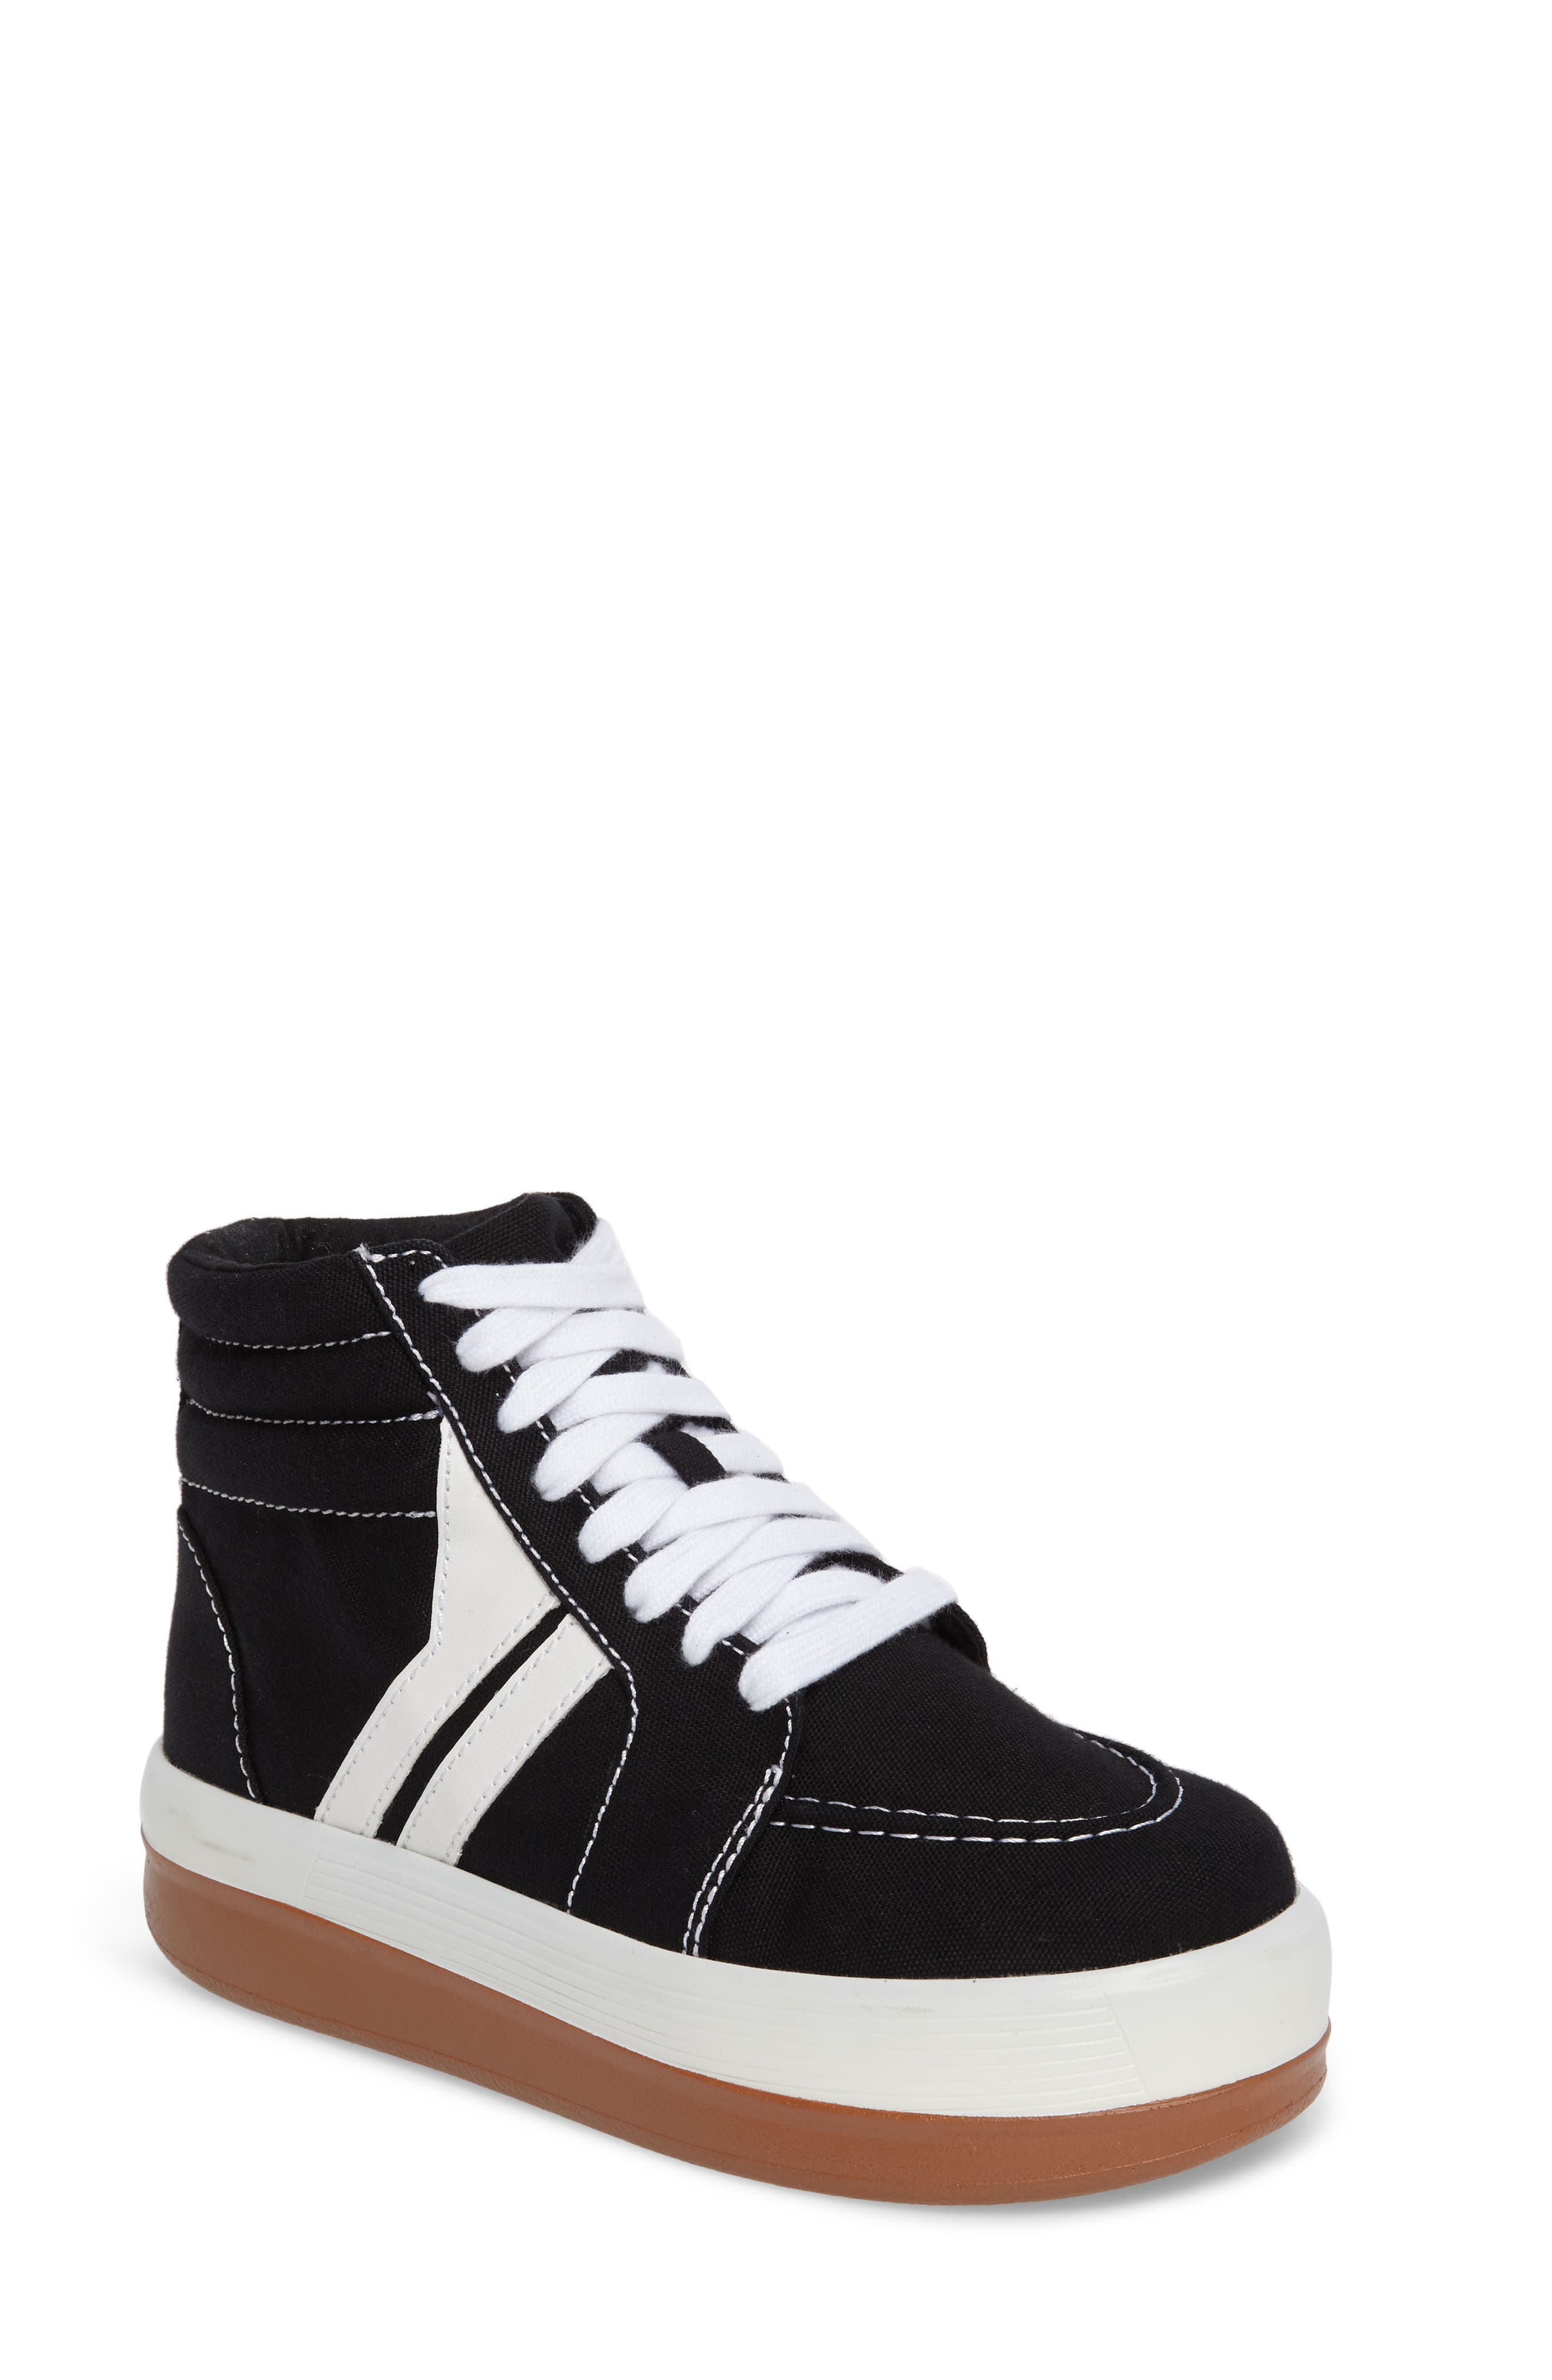 Grind High Top Sneaker,                             Main thumbnail 1, color,